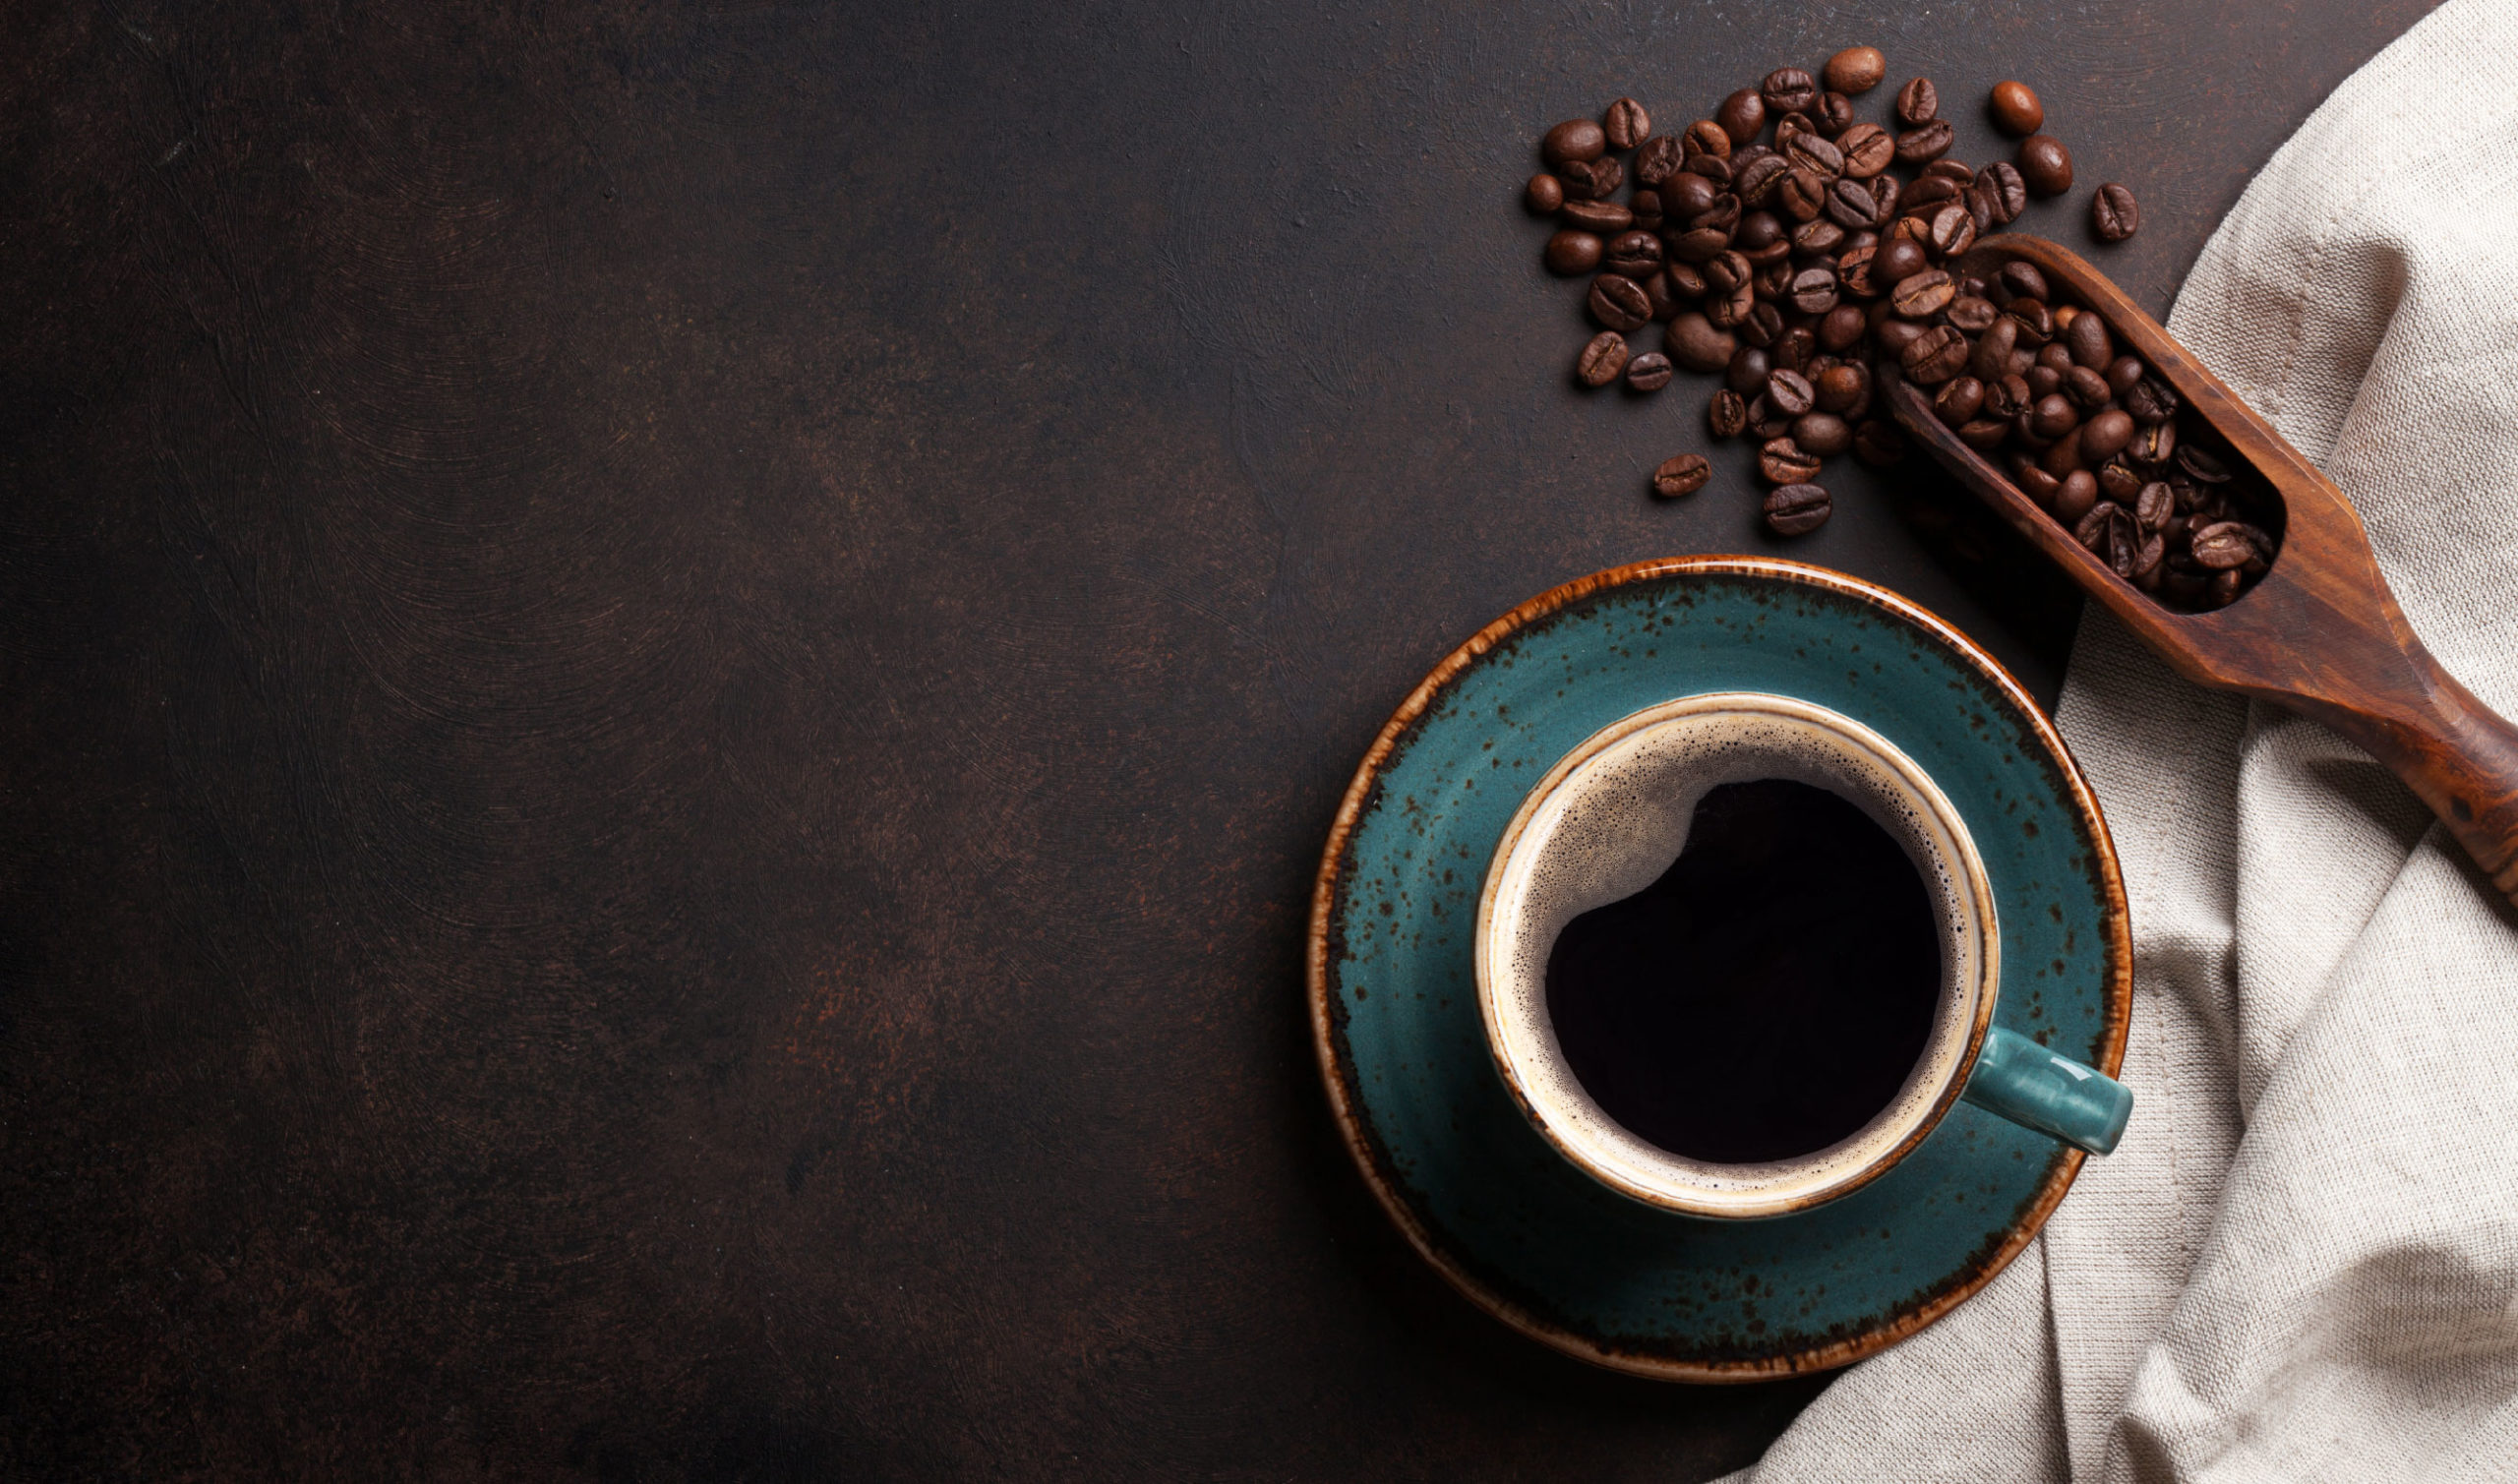 How To Store Your Roasted Coffee Bean The Right Ways According To Experts? Introduction